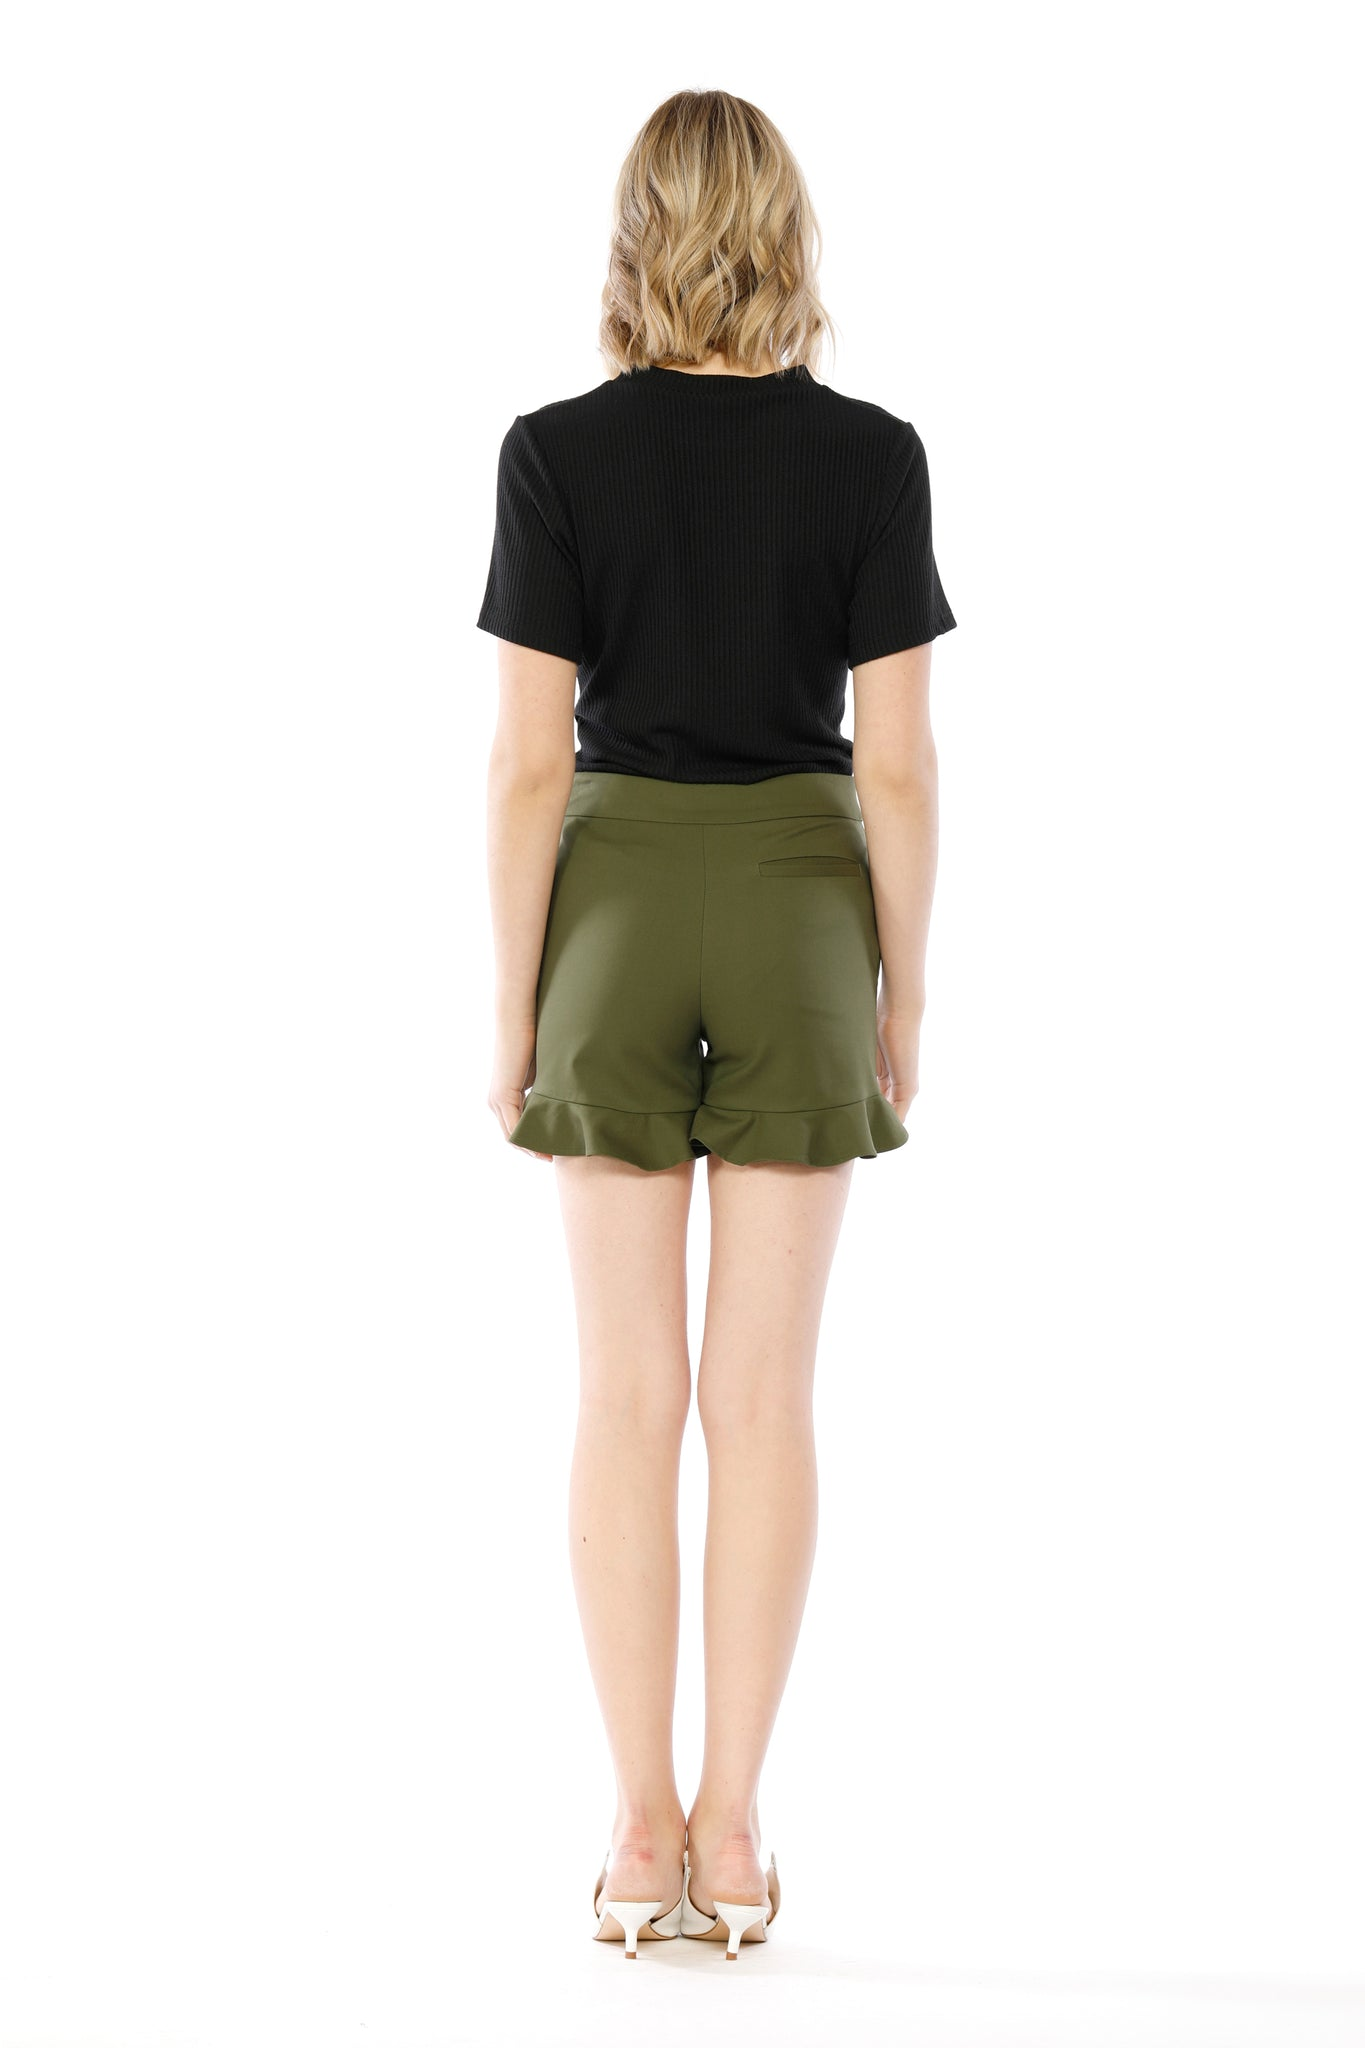 Back view of Lillian Short, sleek olive short shorts with flared, ruffled bottoms. Shell is 95% Cotton and 5% Spandex, Lining is 80% Polyester and 20% Cotton - and Machine-washable.